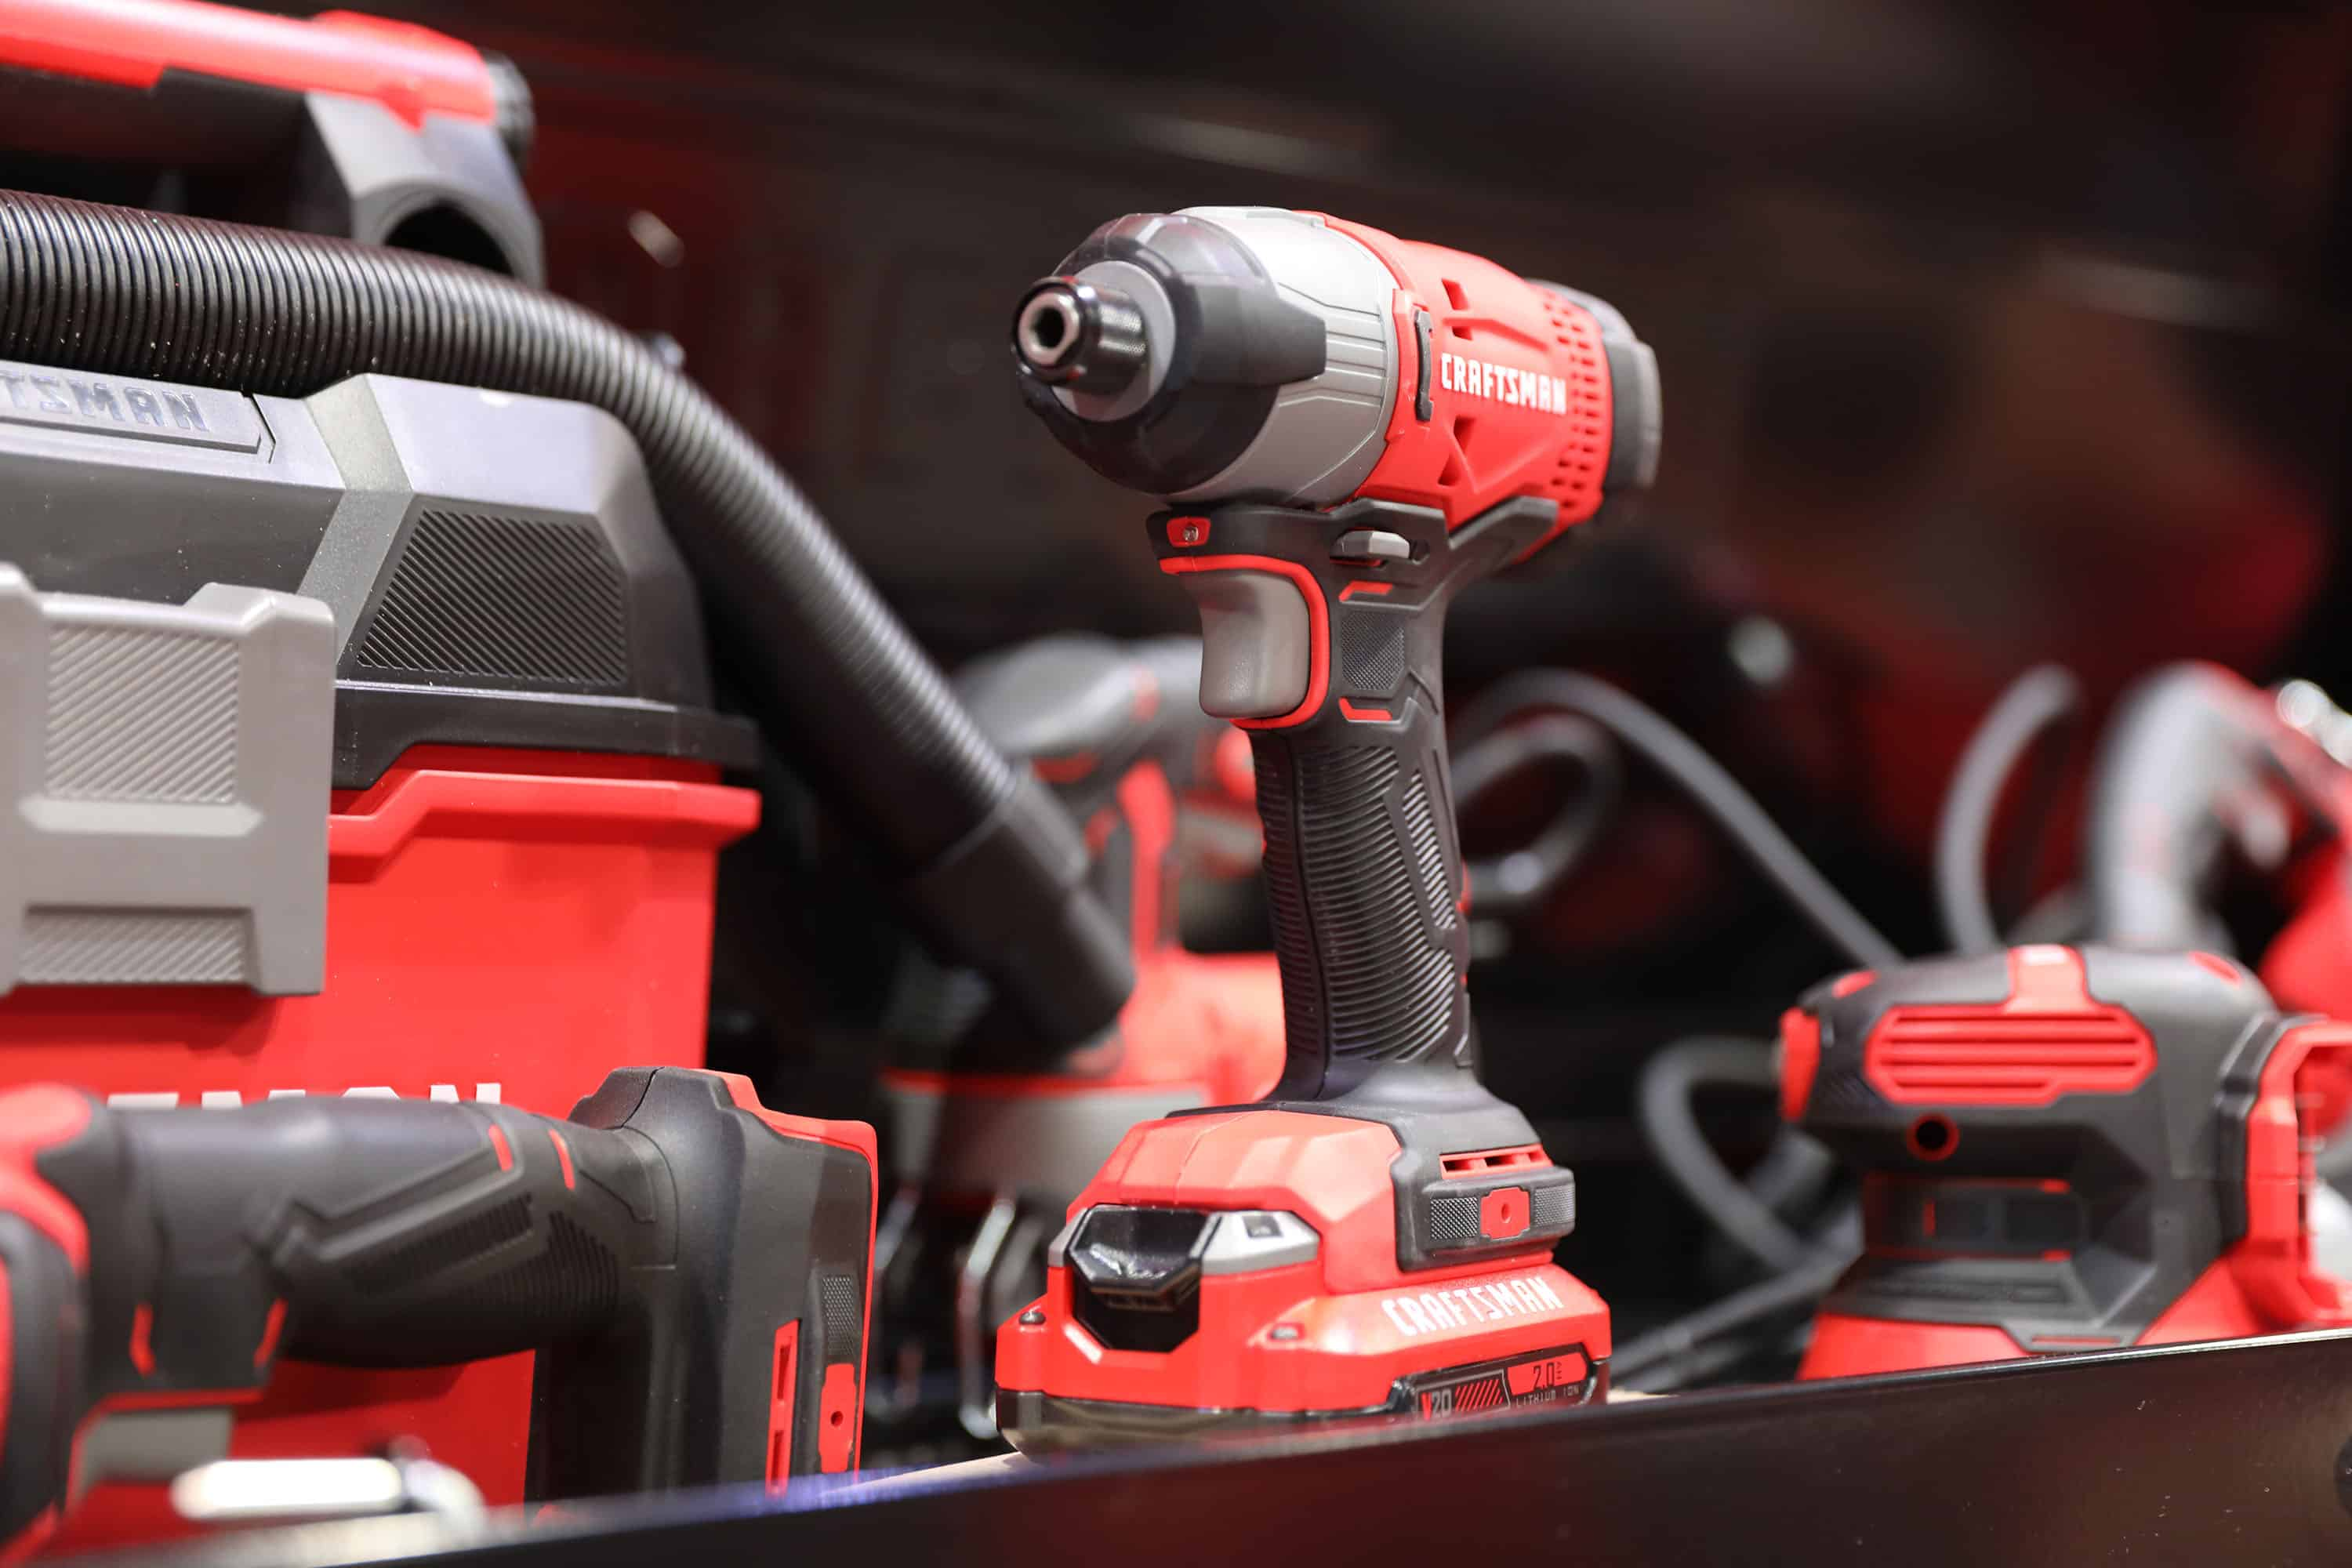 New Craftsman Tools Are Coming Soon